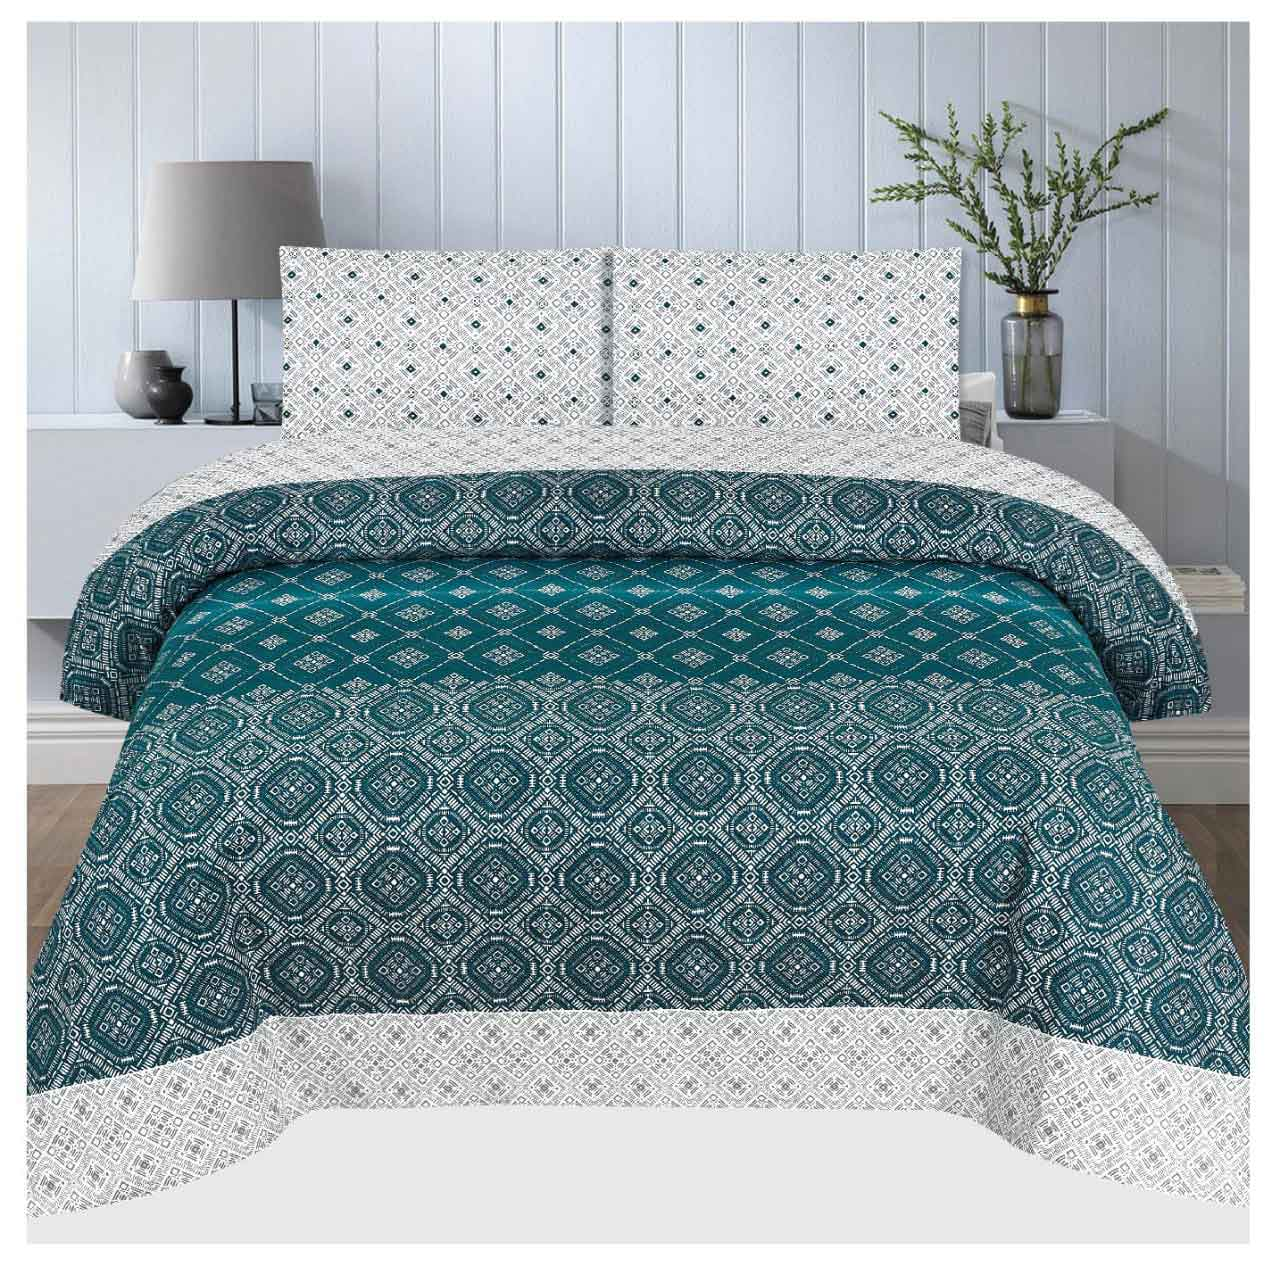 Grace D102 - Cotton PC King Size Bedsheet with 2 Pillow Covers.